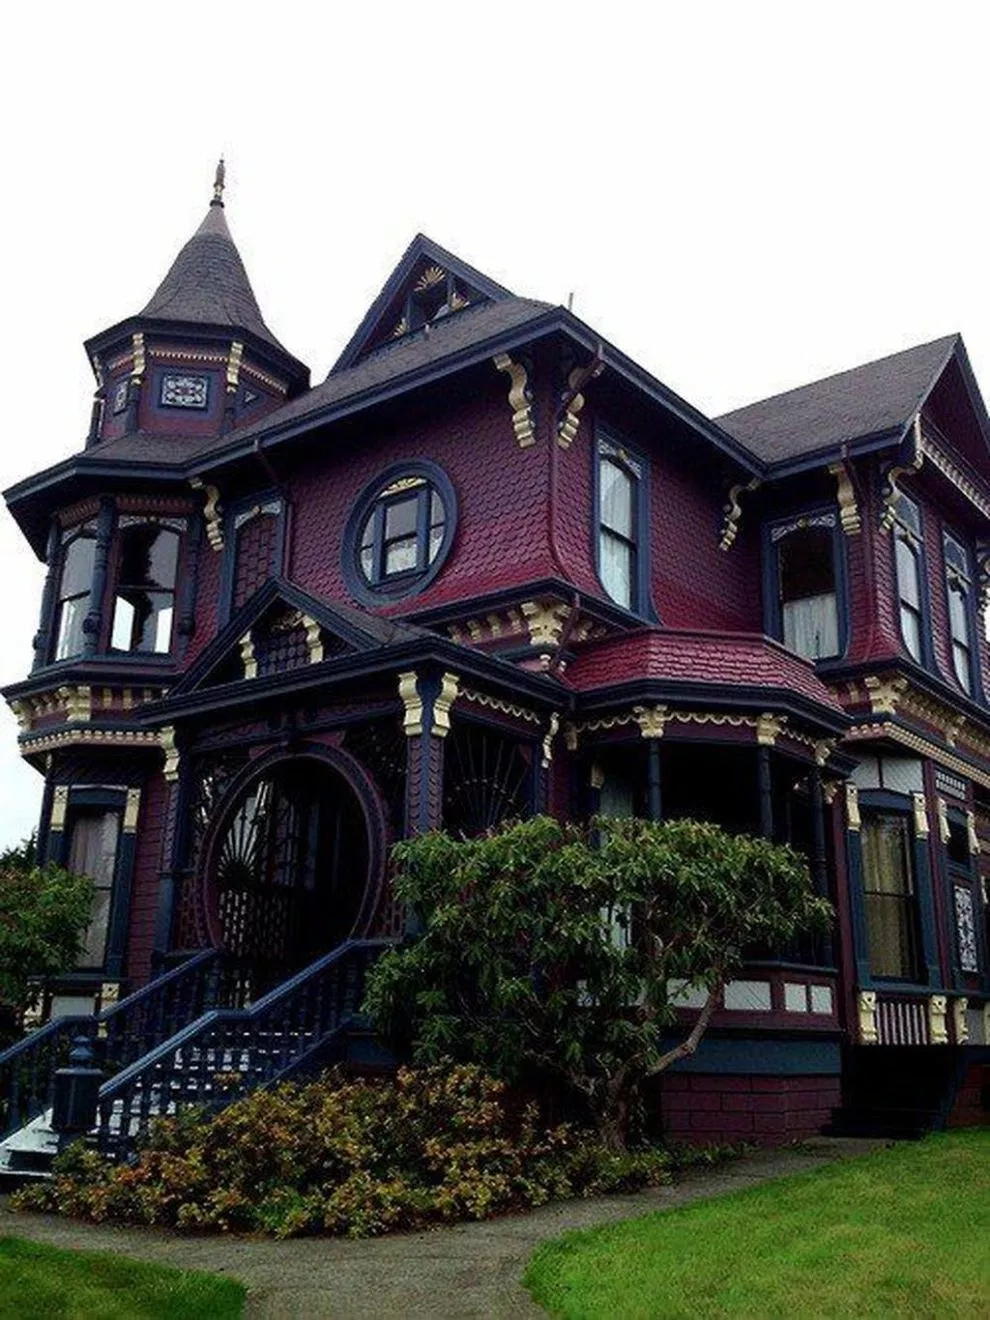 50 Victorian House Polychrome Paint Schemes Ideas 13 Furniture Inspiration Victorian Homes Exterior Victorian House Colors Victorian House Plans